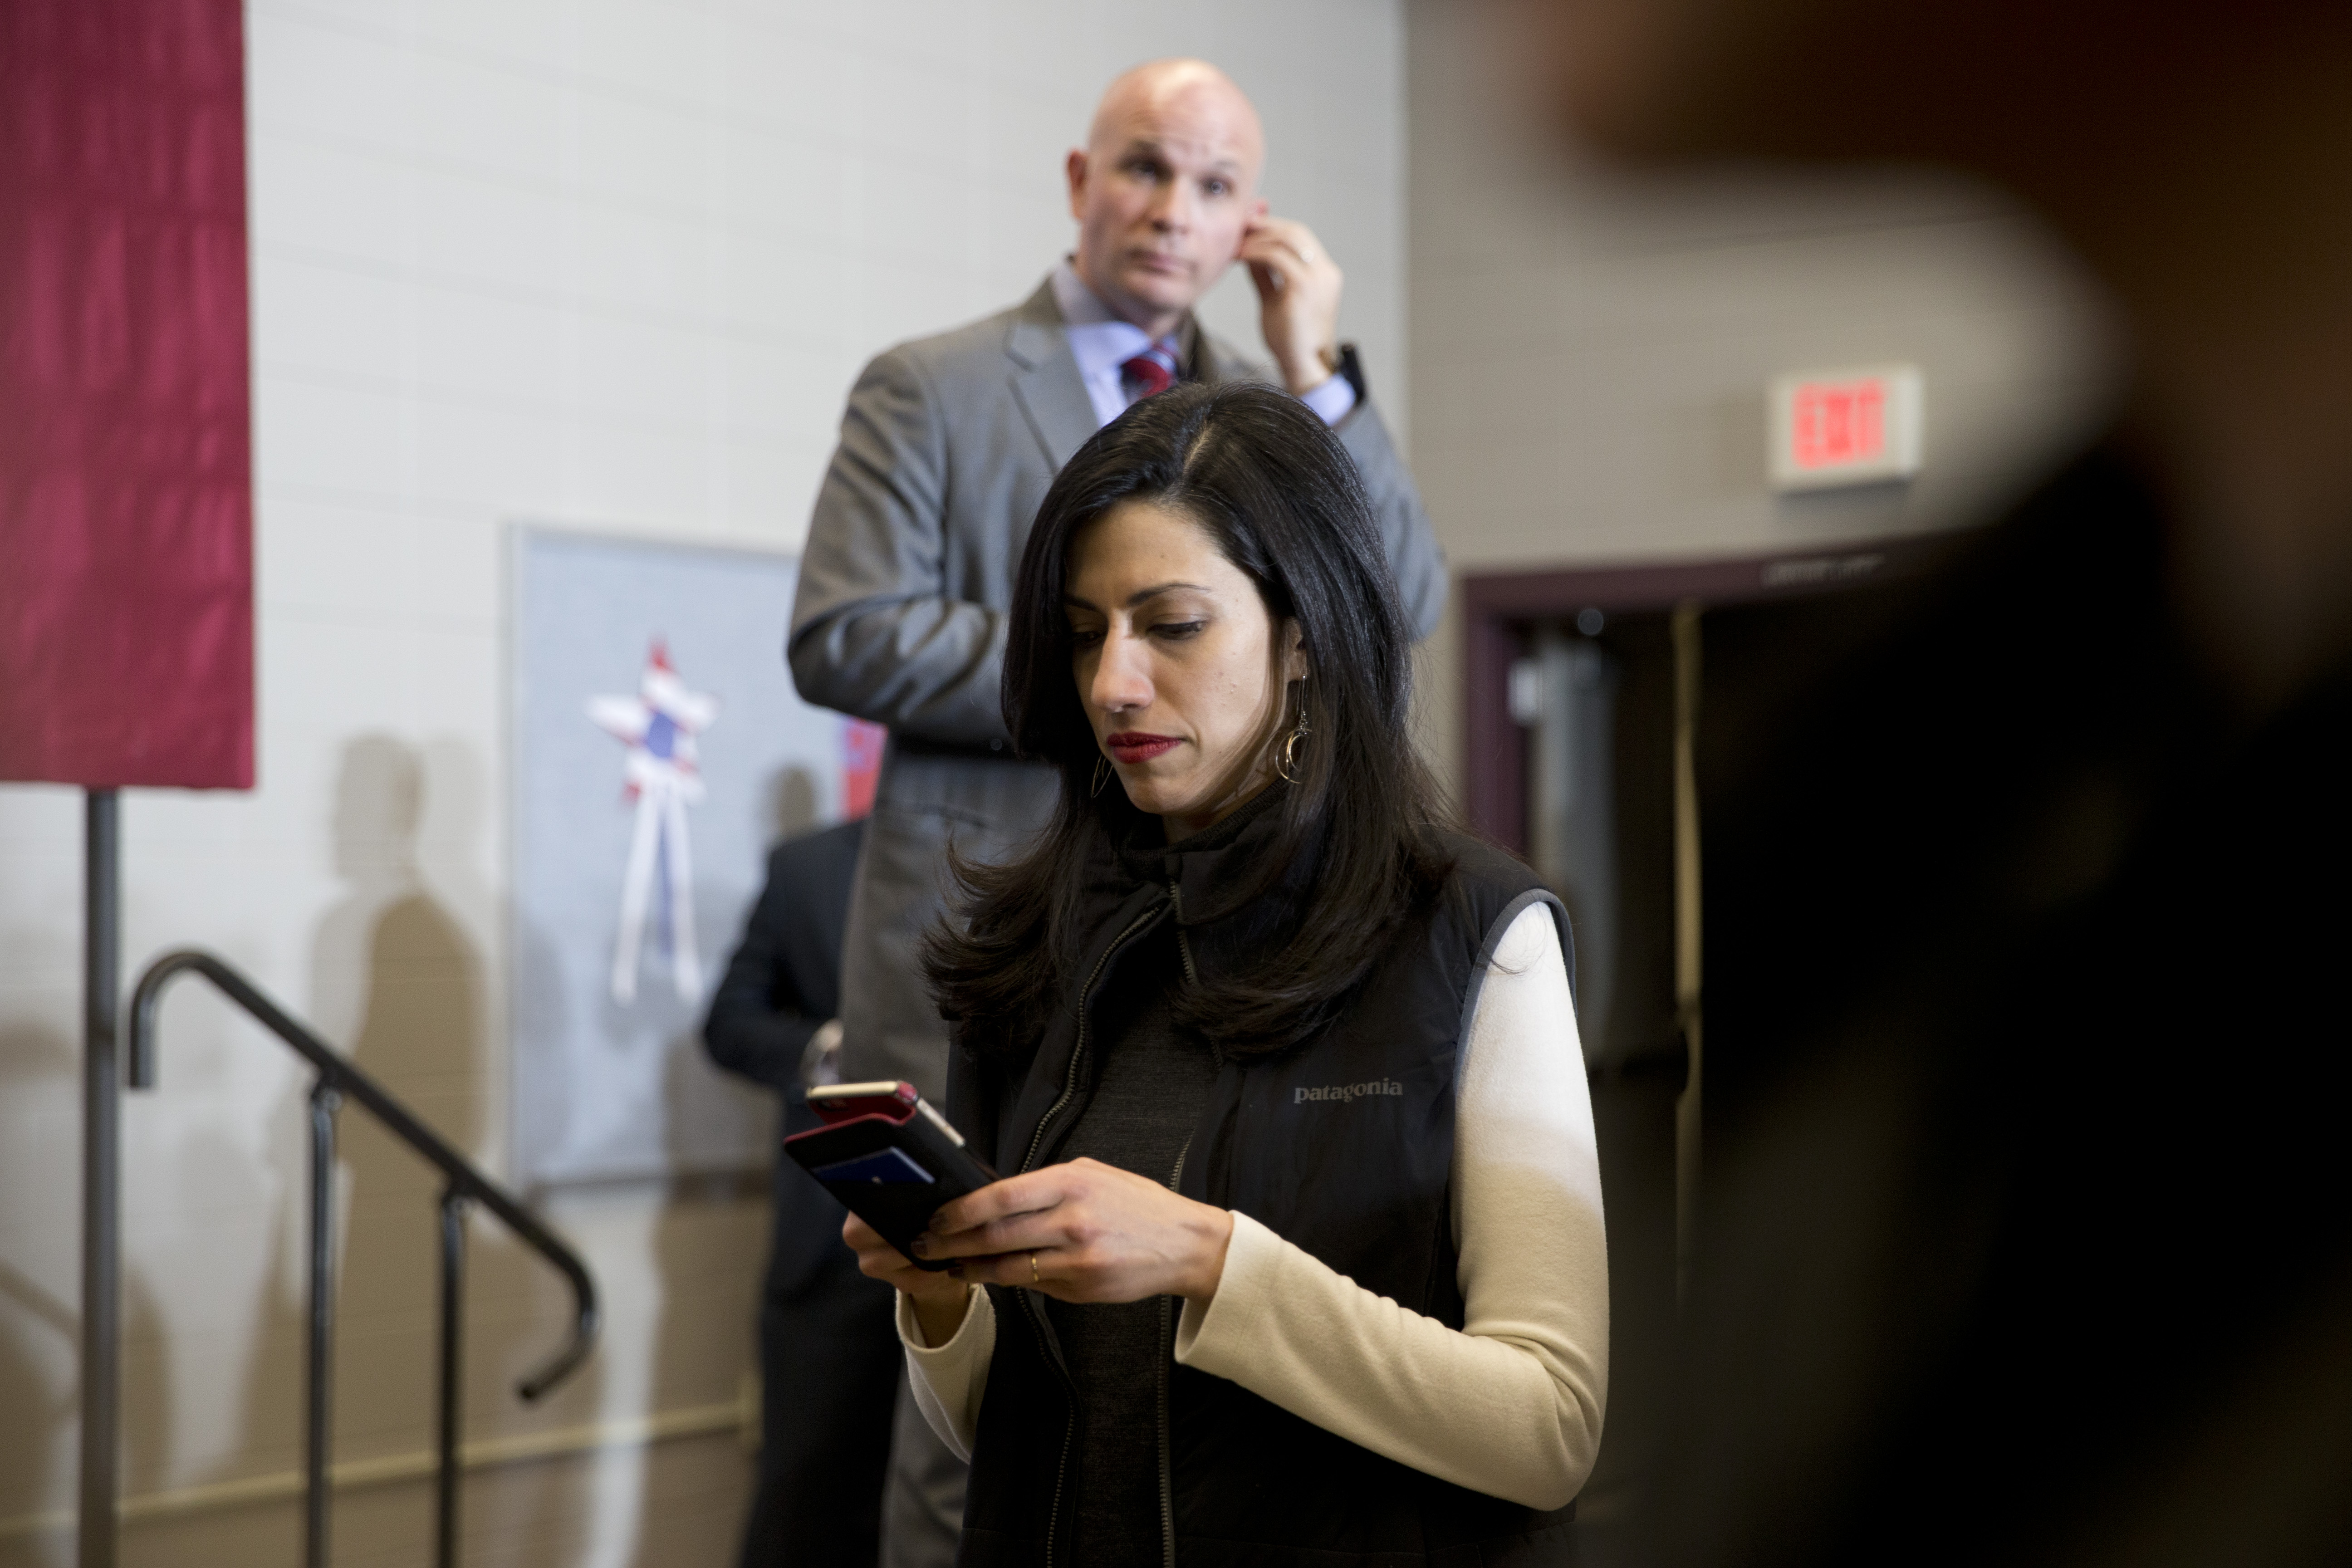 FILE - Huma Abedin, center, aide to Democratic presidential candidate Hillary Clinton is photographed during a campaign event at the Keokuk Middle School. A conservative group called Judicial Watch said in court filings it wants to question top Clint...